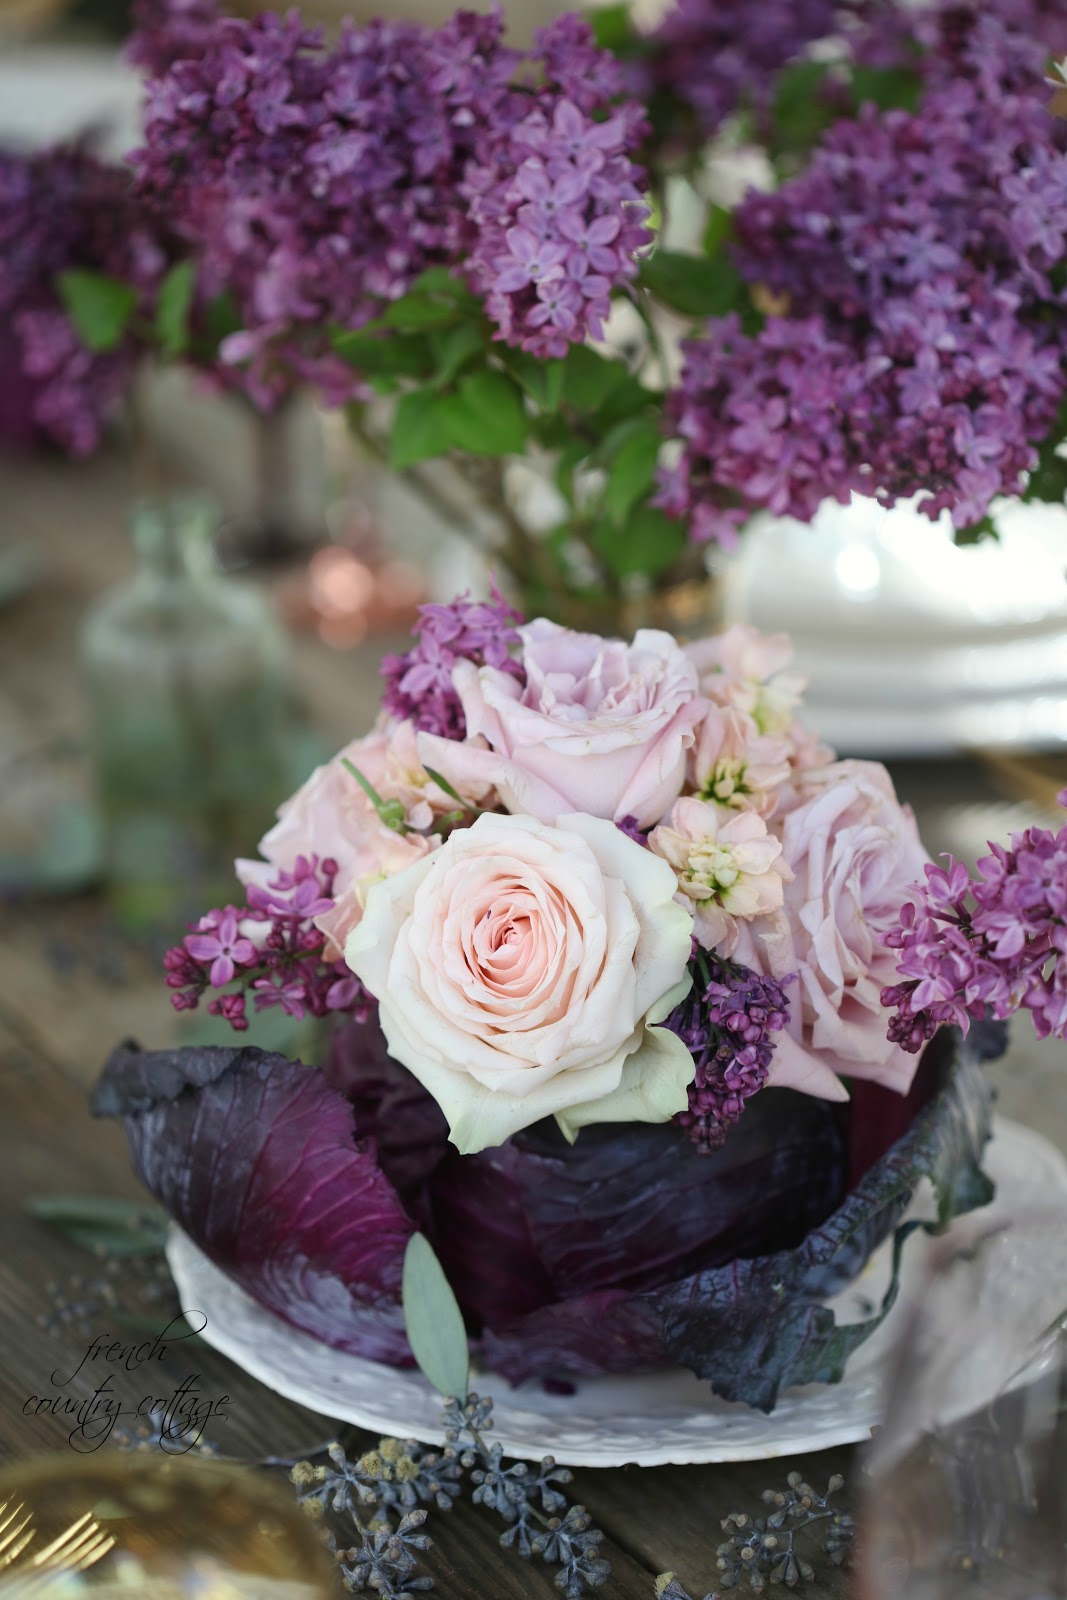 5 Simple And Elegant Centerpiece Ideas For Easter French Country Cottage